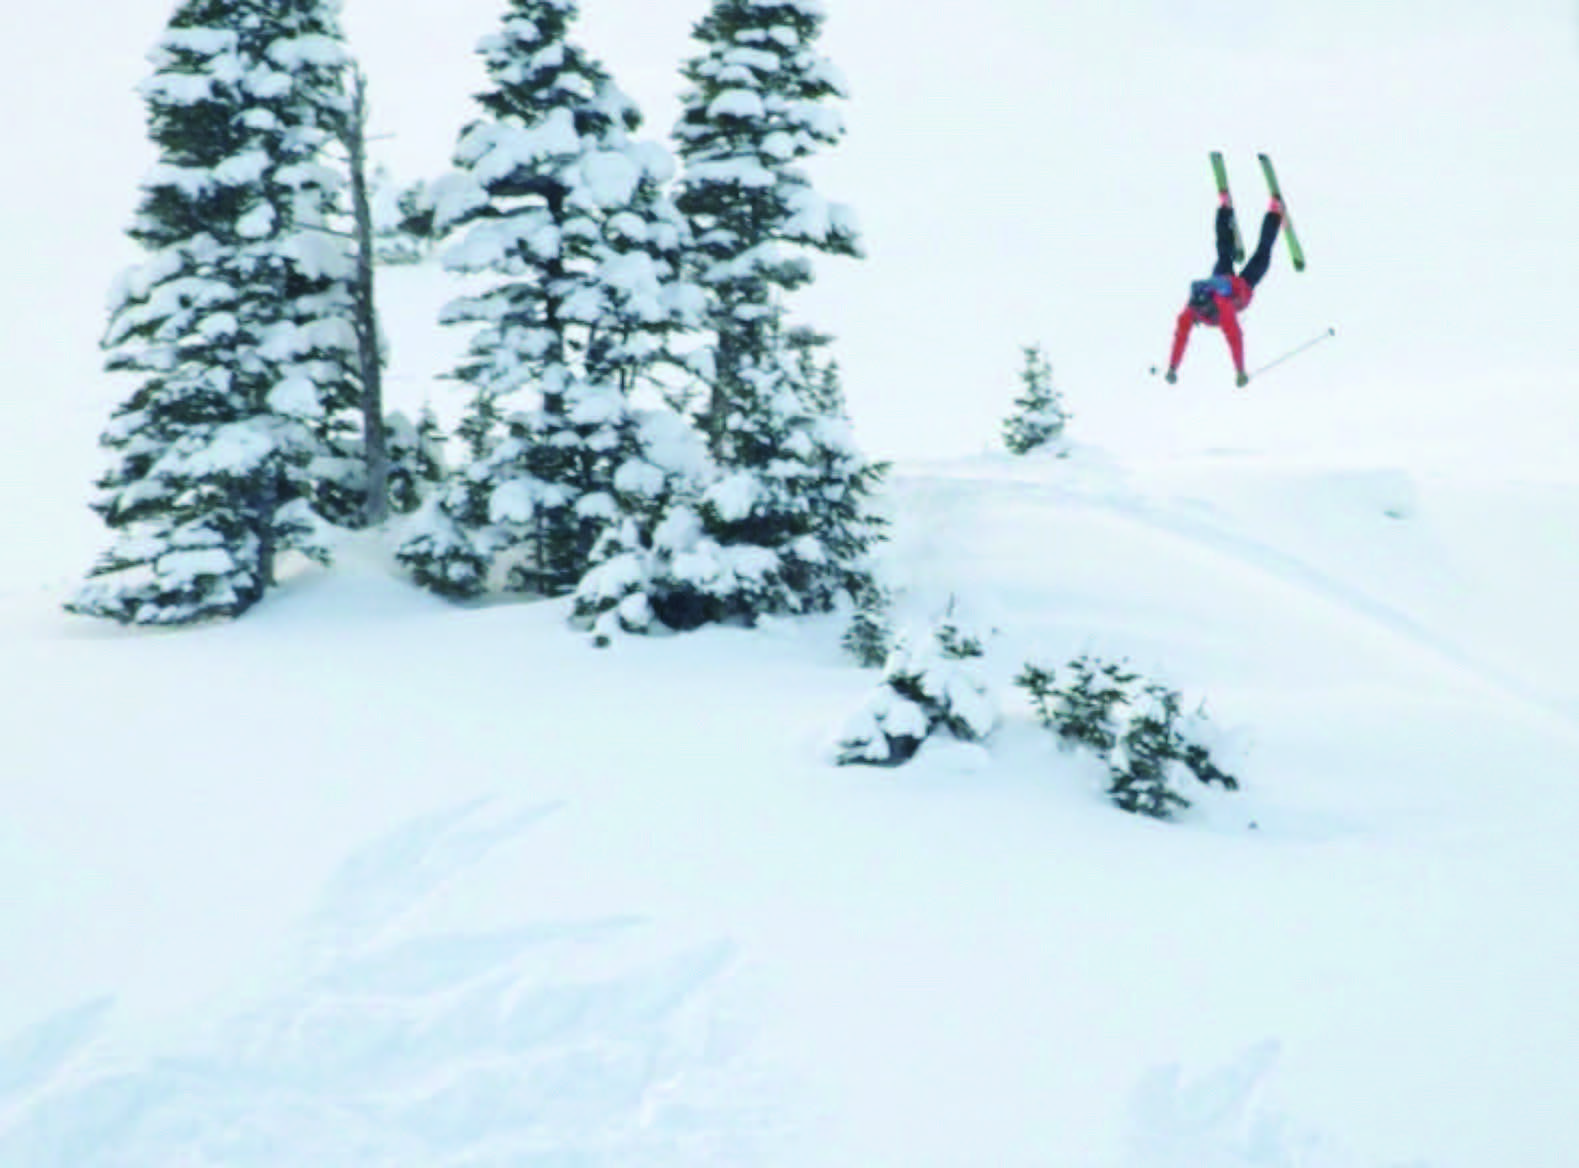 Goertzen, a former freeride competitor, tosses a front flip for the camera.